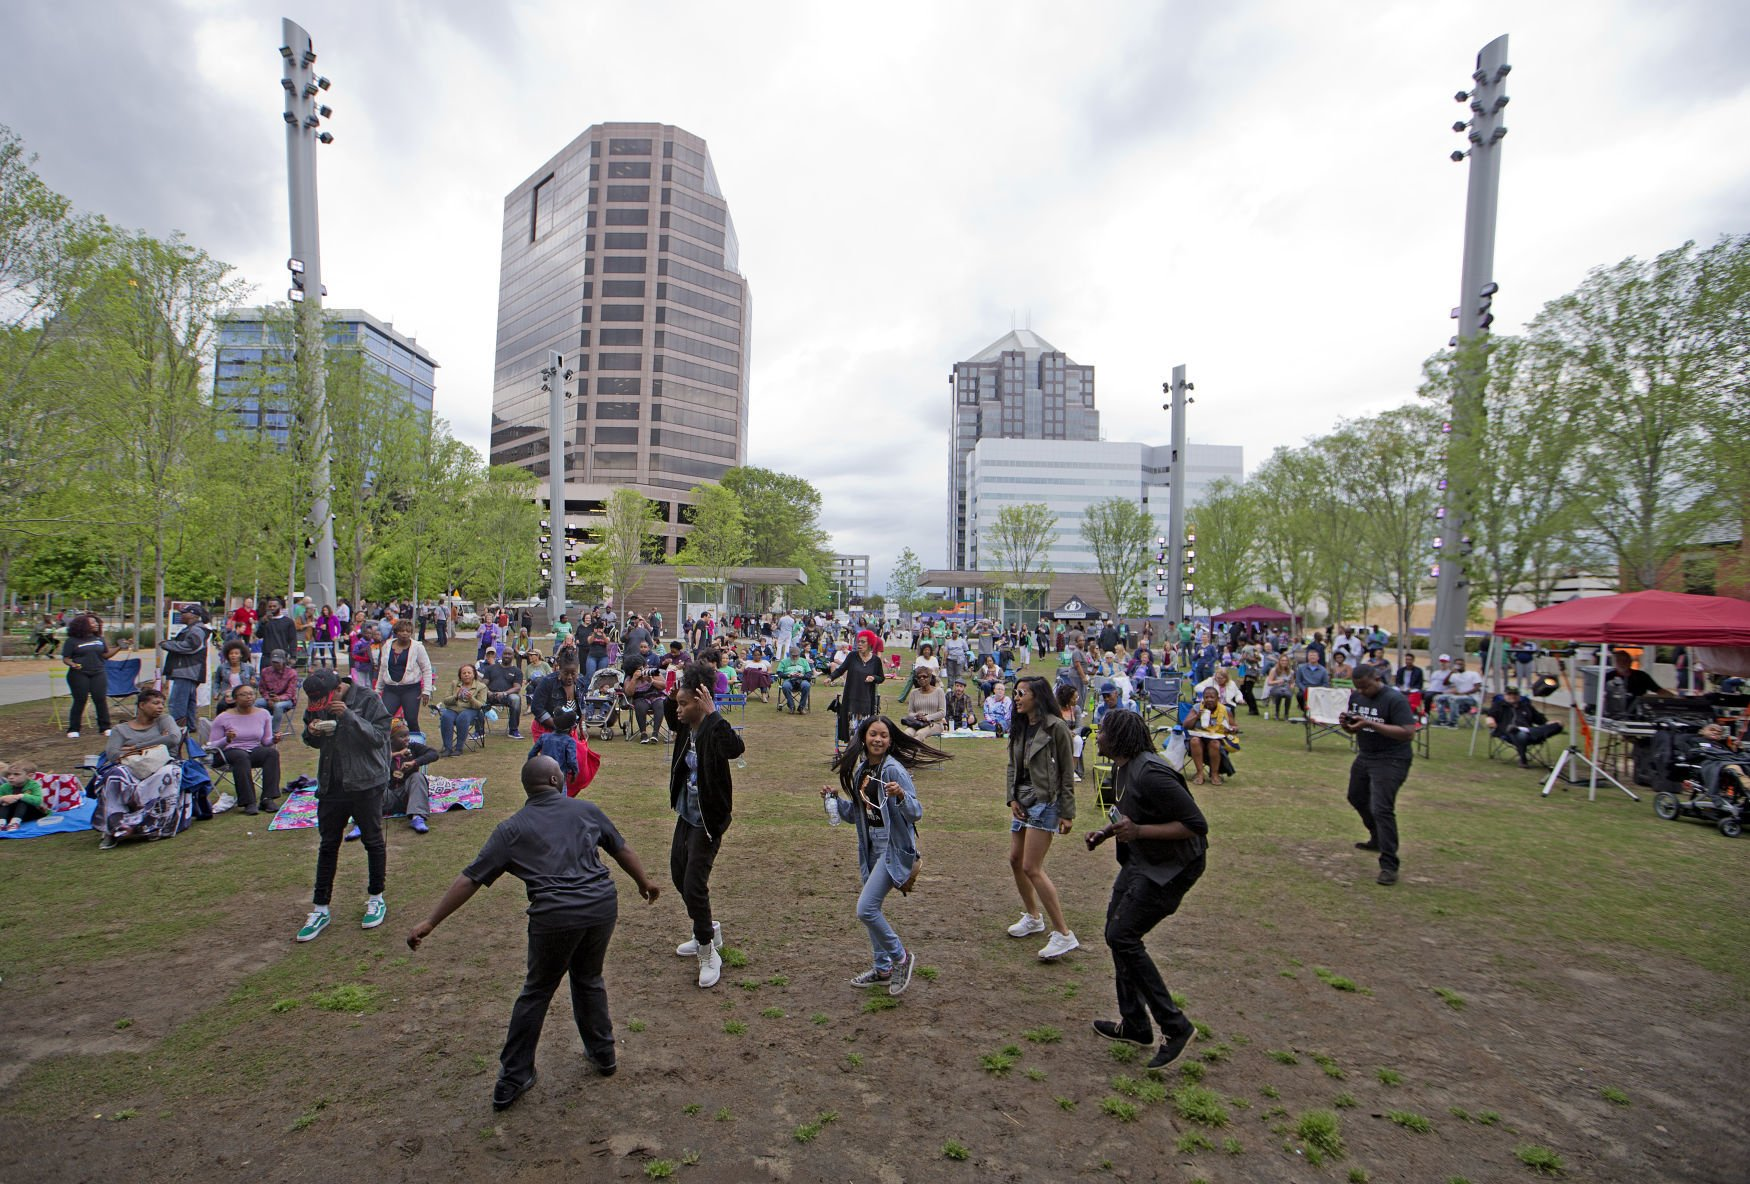 Concert for tornado relief at LeBauer Park & Greensboro Strong concert raises money for tornado victims | Local ...